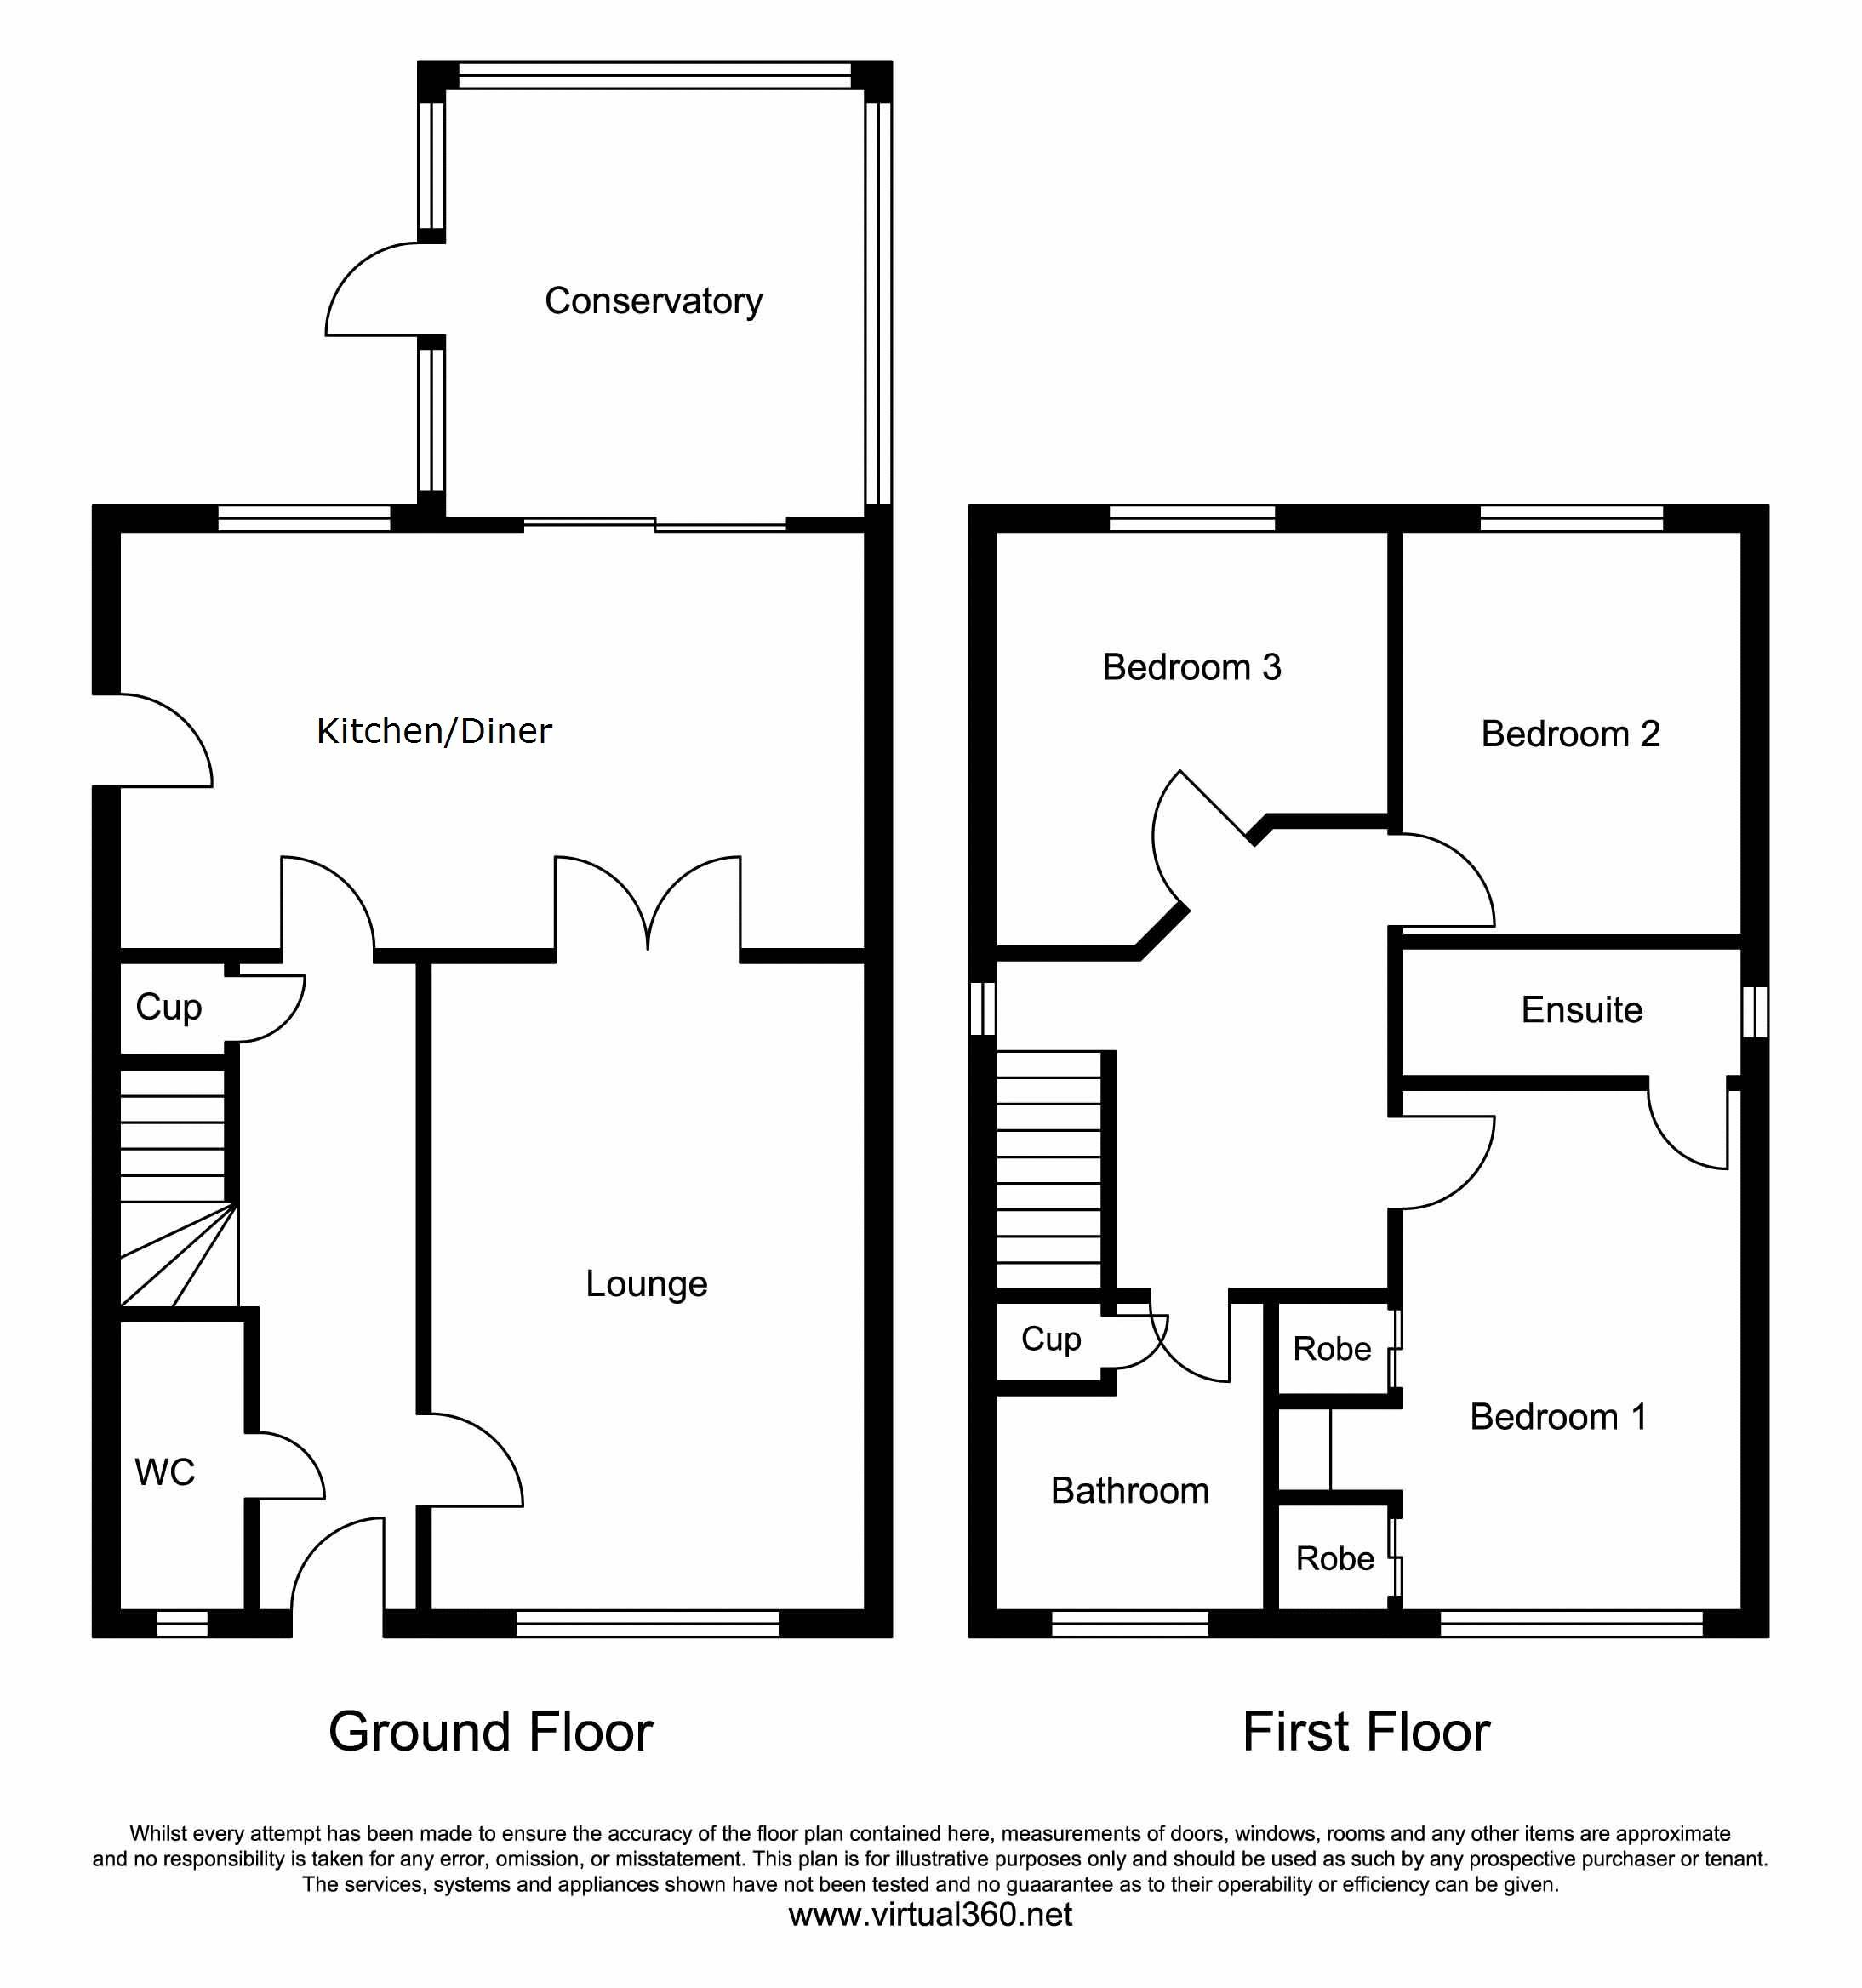 Lodge Wood Close, Chorley floor plan